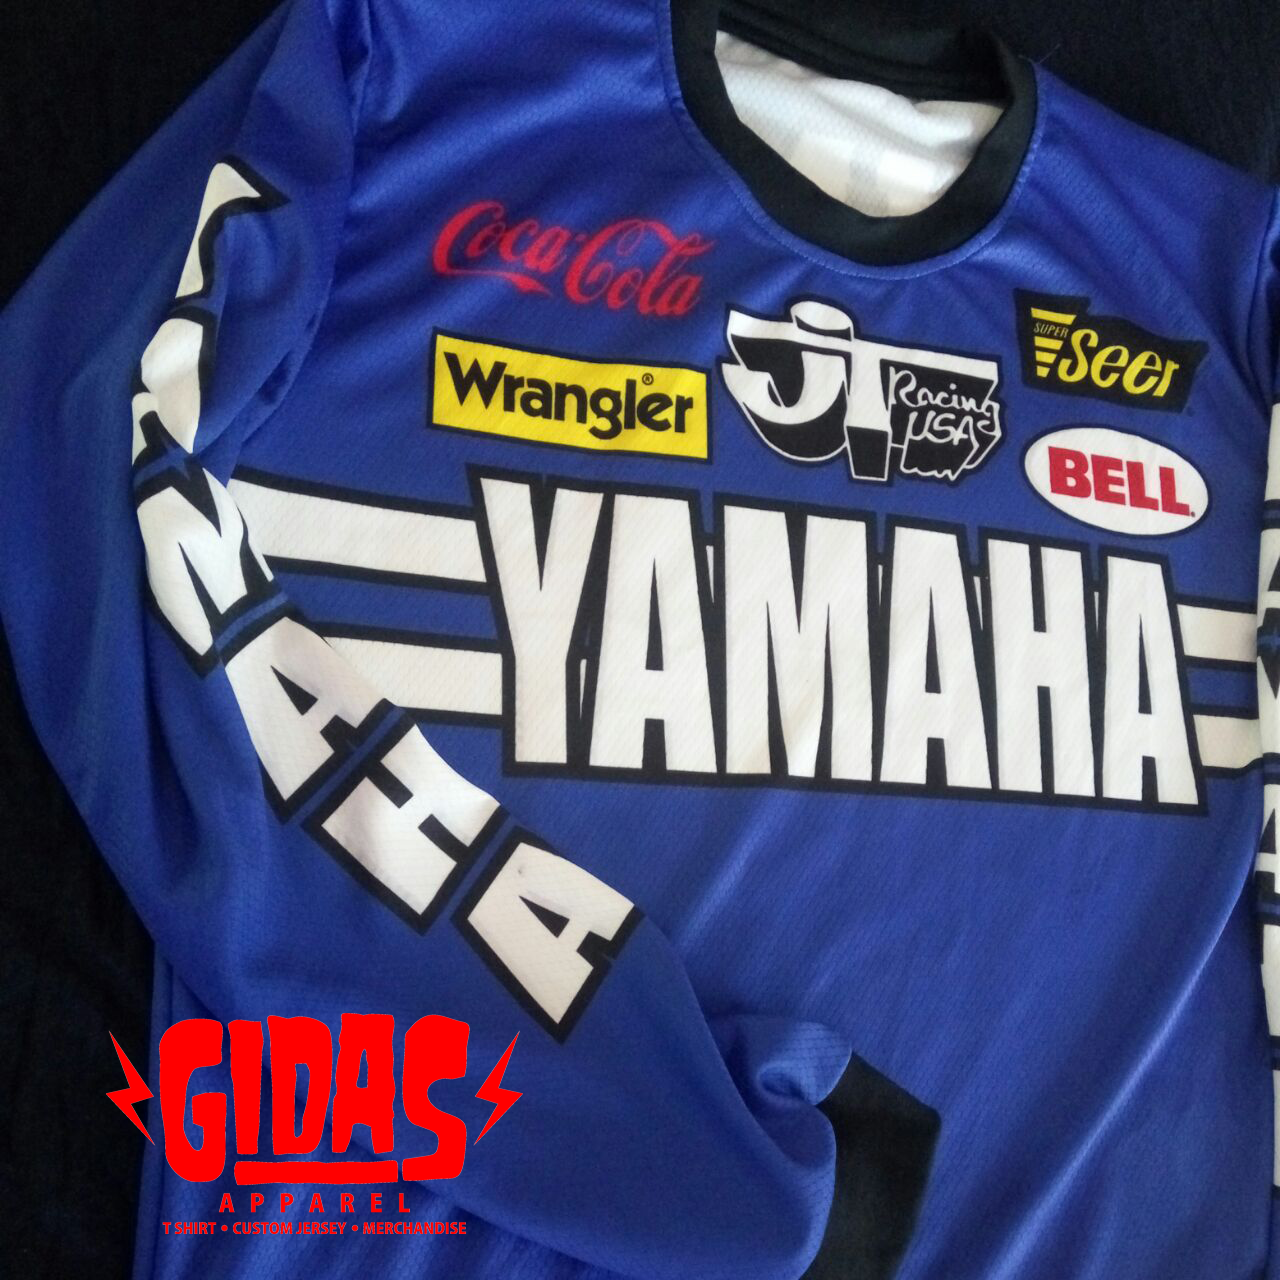 Gidas Apparel Custom Jersey Vintage Motocross Jersey Whatsapp 082137240629 Email Gidasapp Gmail Com Vintage Mx J Vintage Motocross Motocross Custom Jerseys